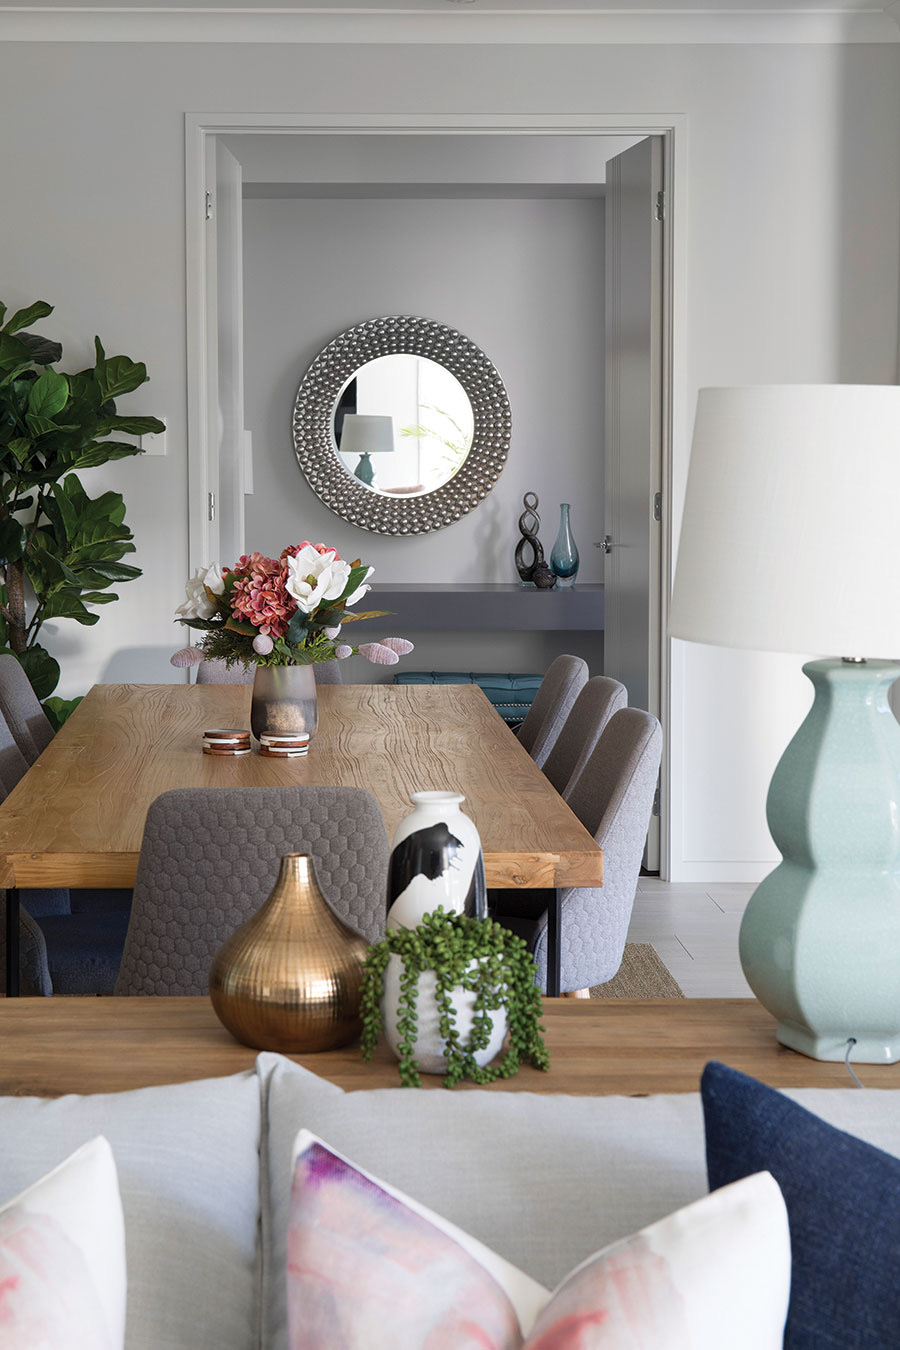 https://www.ivyandfinch.com.au/wp-content/uploads/2021/01/Interior-Design-Redland-Bay-Dining.jpg